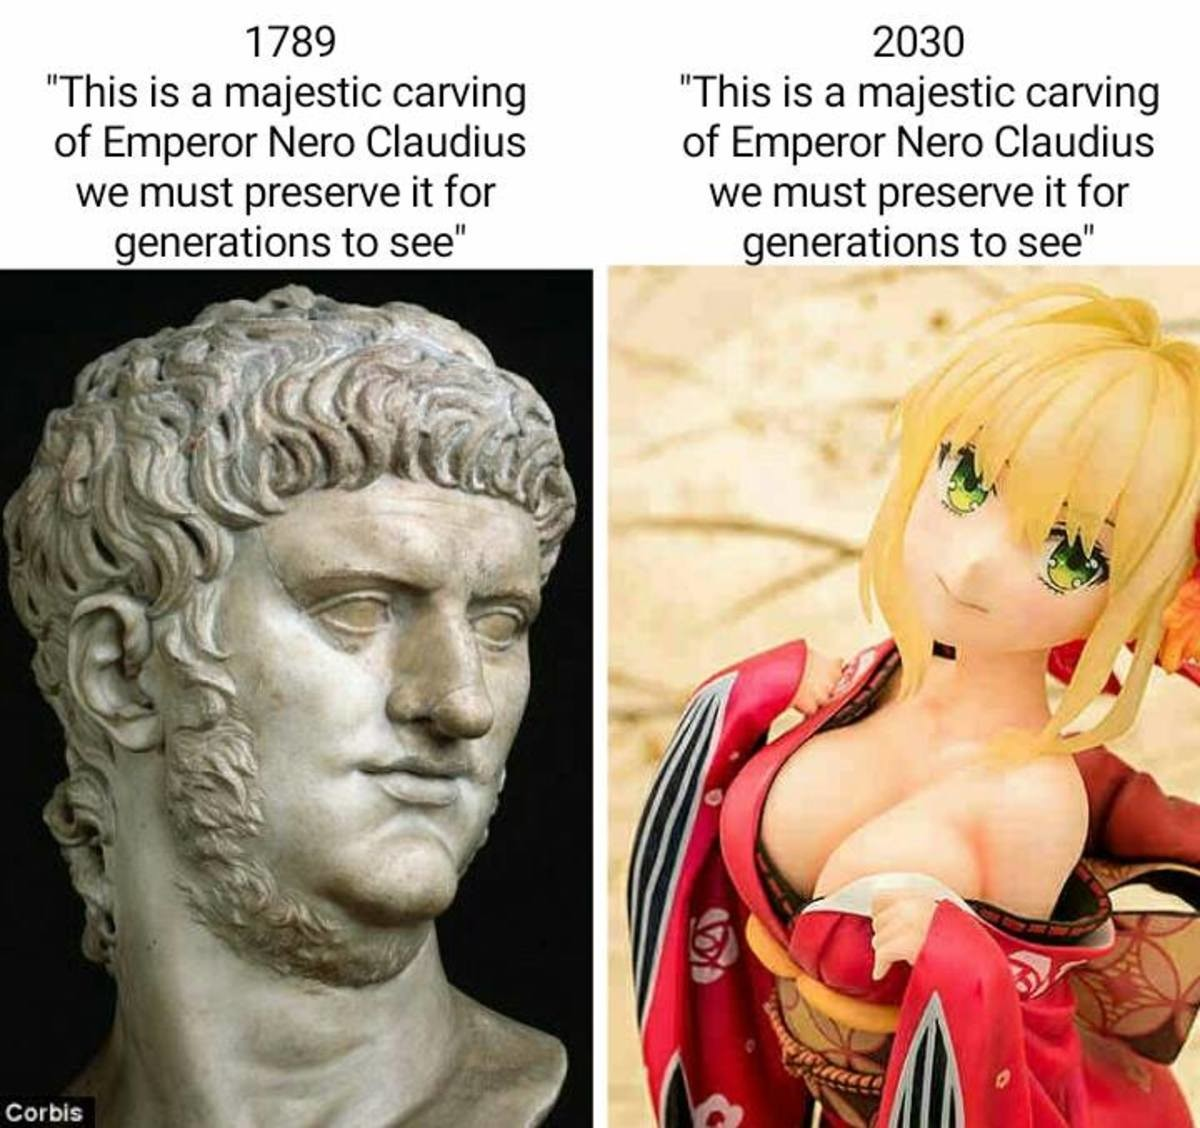 Truly Nothing Has Changed. join list: BewbDudes (2578 subs)Mention History join list:. Huh. So Nero was a neckbeard. Guess he is living the dream in his new form.